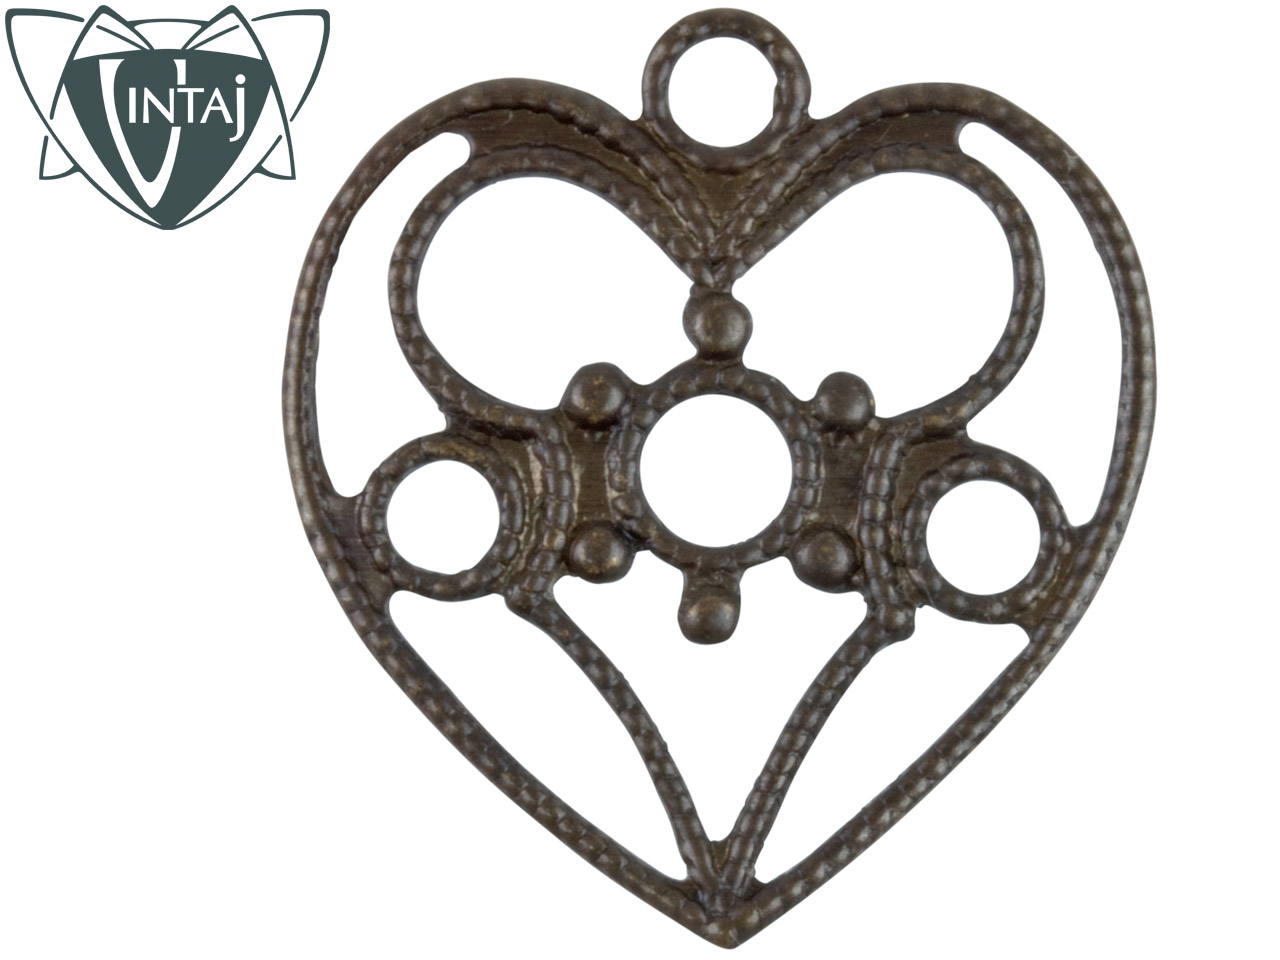 Vintaj Brass Delicate Heart Pack Of 2